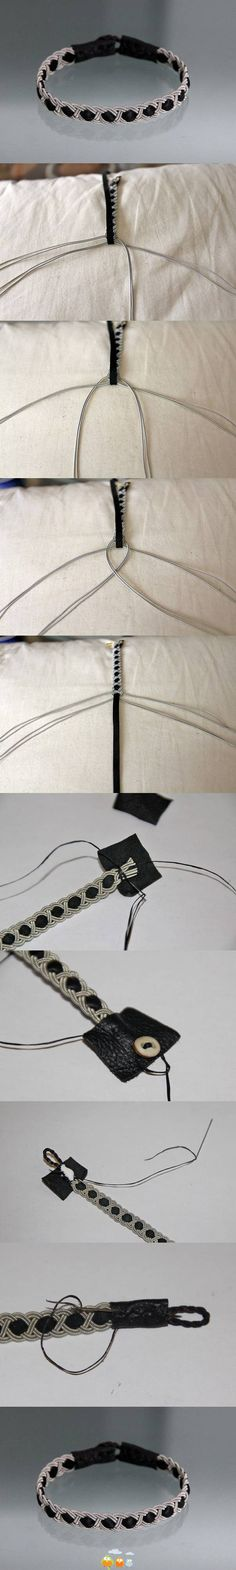 DIY Jewelry: DIY Cute Wristband cute crafts diy easy crafts diy ideas diy crafts do it yourse Macrame Jewelry, Wire Jewelry, Jewelry Crafts, Jewelery, Handmade Jewelry, Wire Rings, Earrings Handmade, Jewelry Ideas, Diy Schmuck